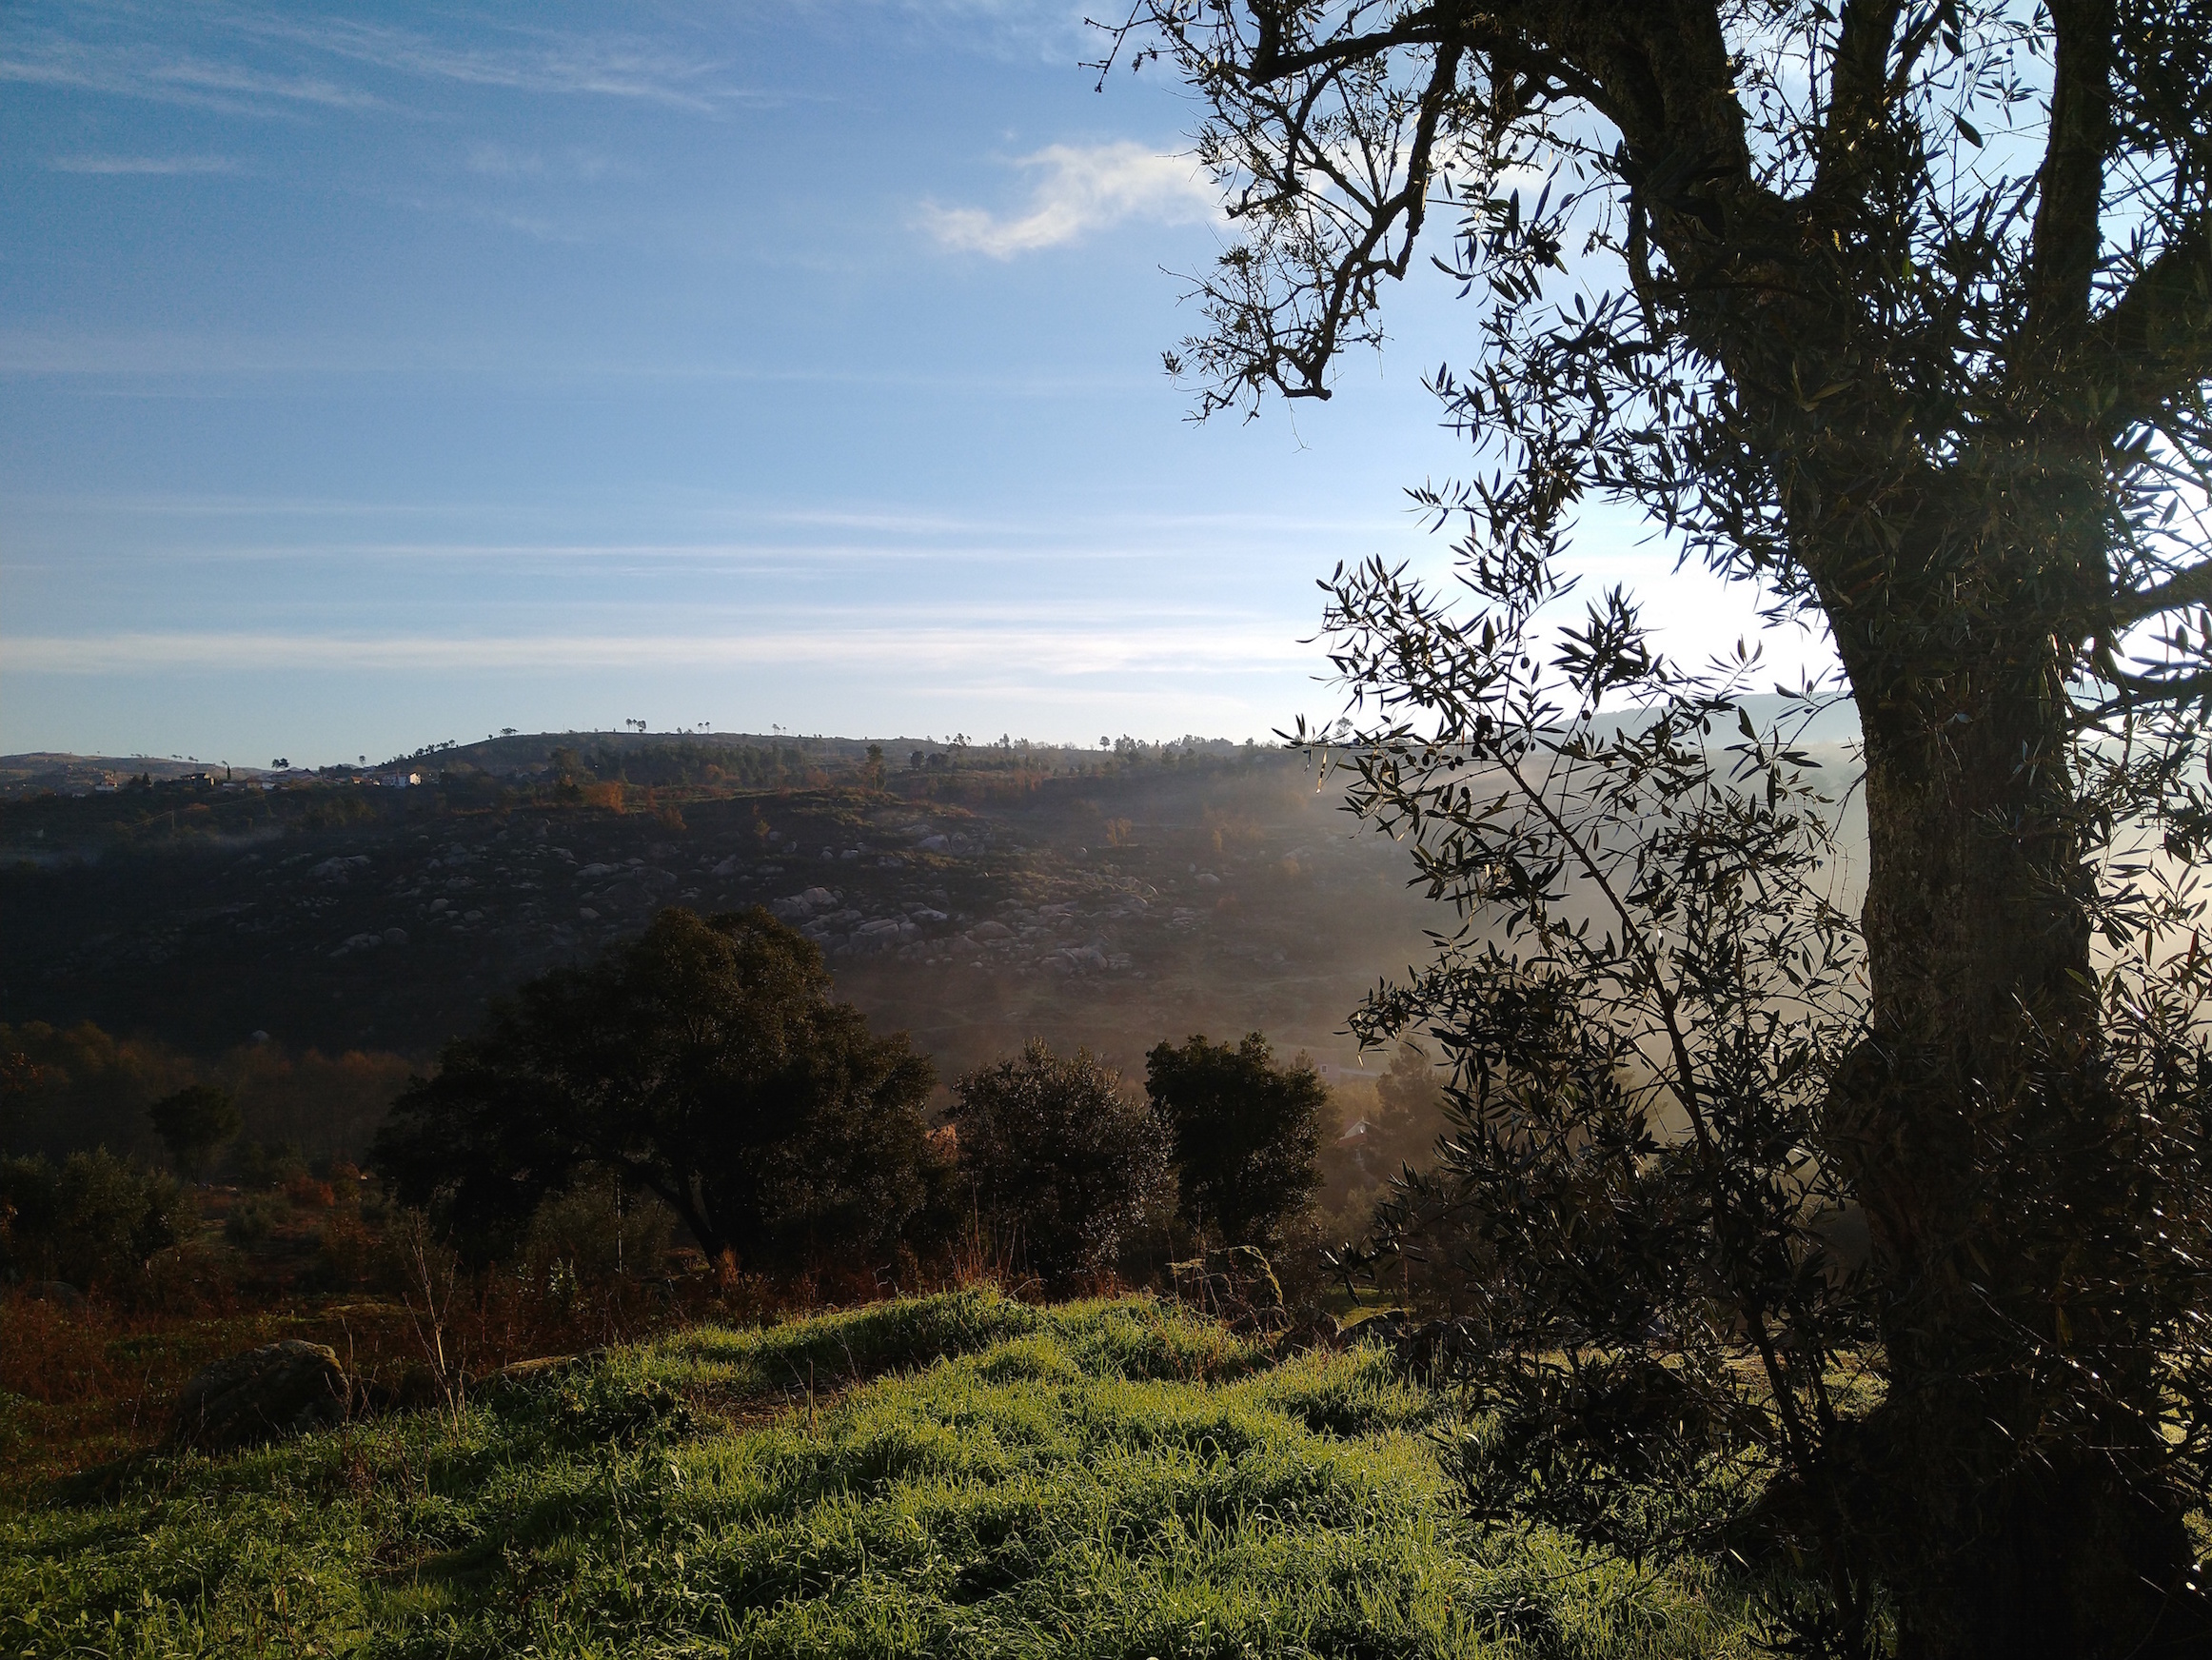 from-our-new-home-in-portugal-a-frequency-transmission